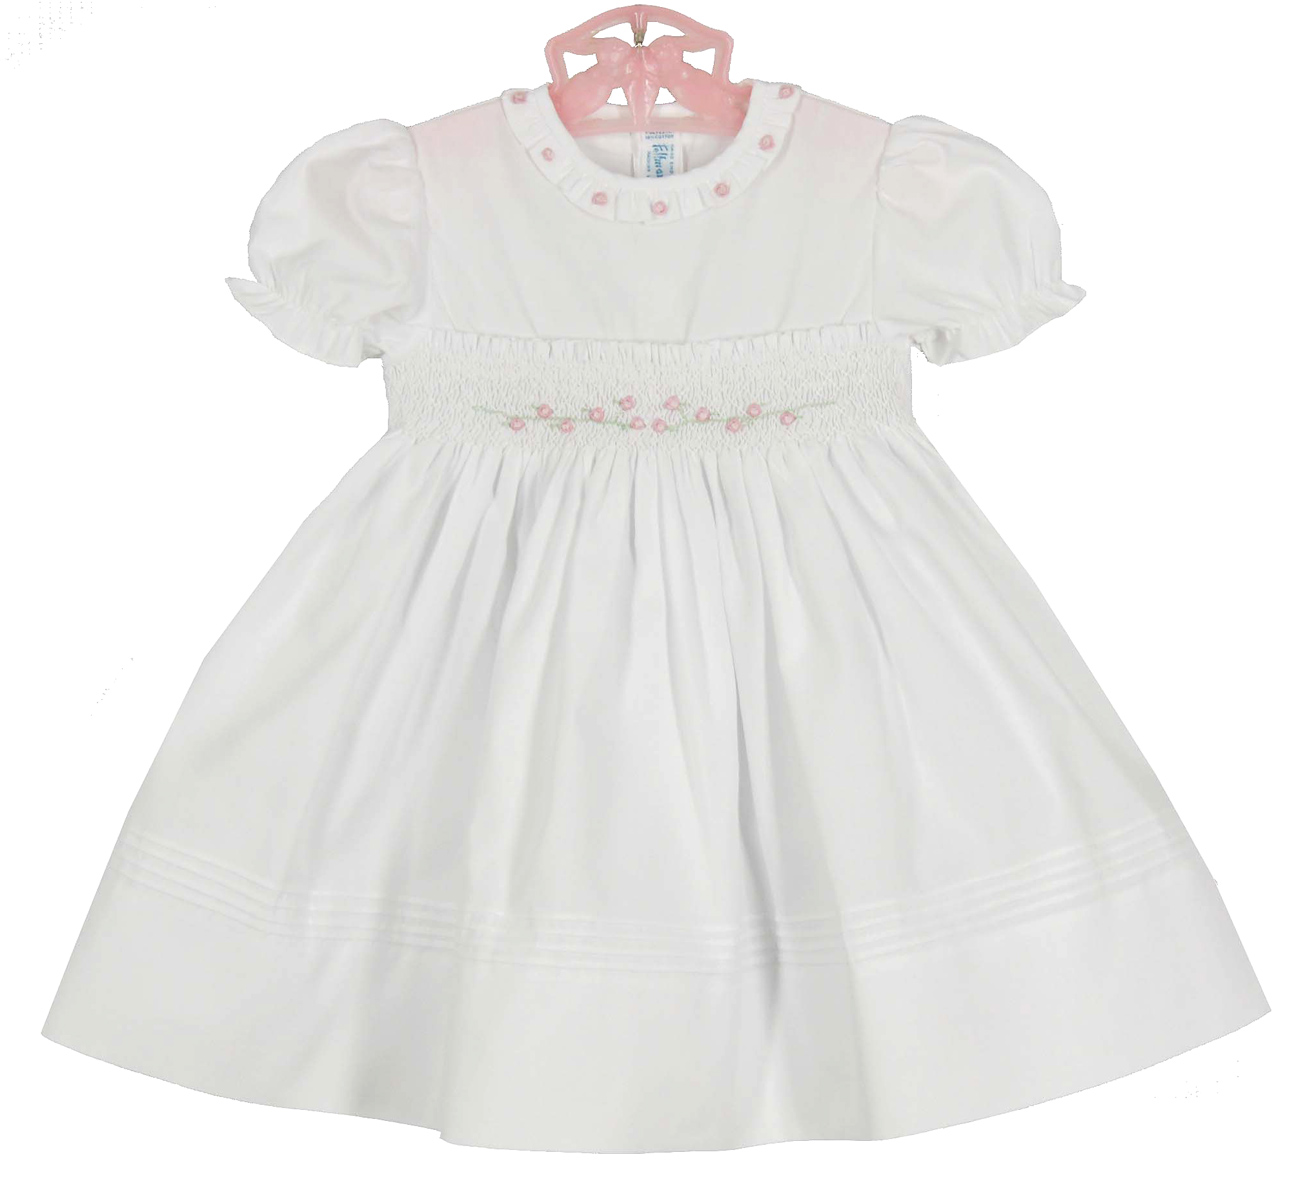 Feltman Brothers white smocked baby dress with pink embroidered ...